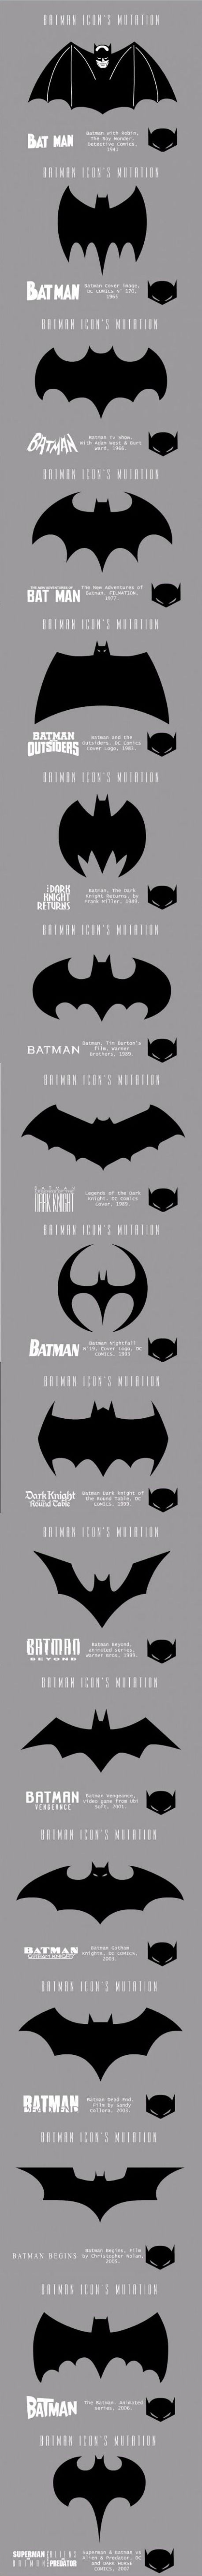 Pics photos batman logo evolution design for samsung galaxy case - Infographic The Evolution Of The Batman Logo From 1940 To Today